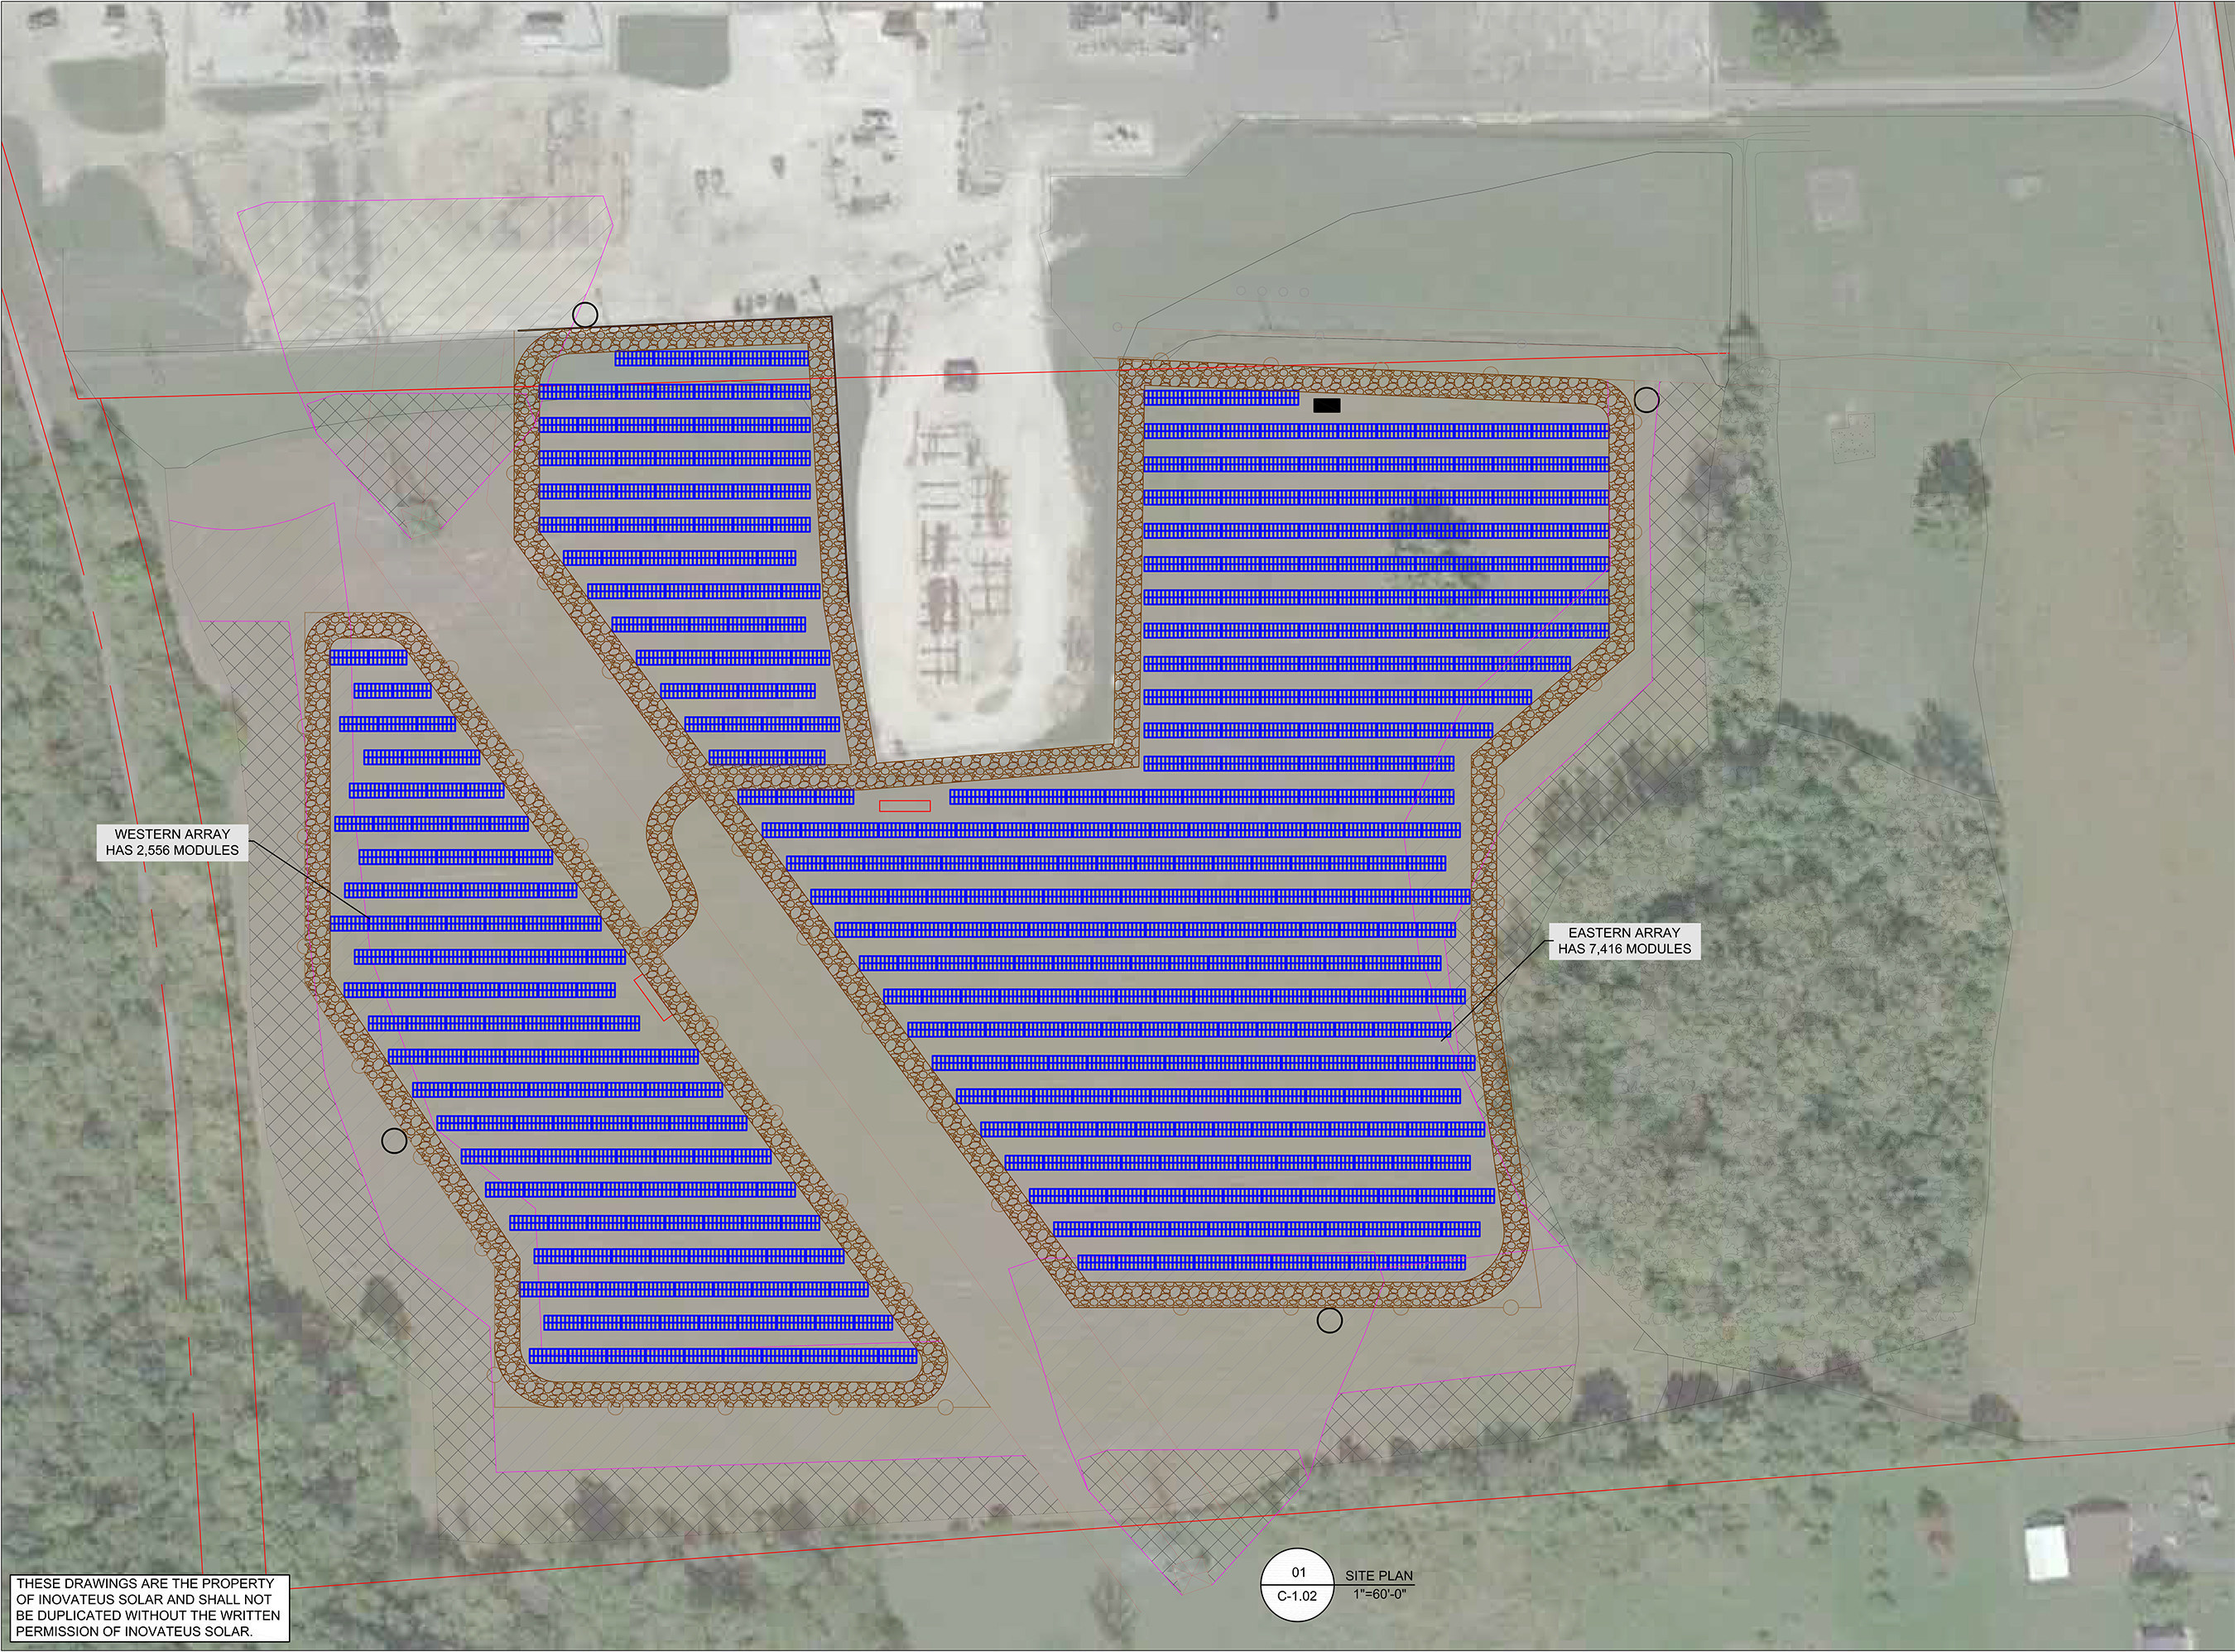 Indiana Based Inovateus Solar to Install the First of Four Solar Projects for Indiana Michigan Power with a 2.5 Megawatt Array Near Marion, Indiana